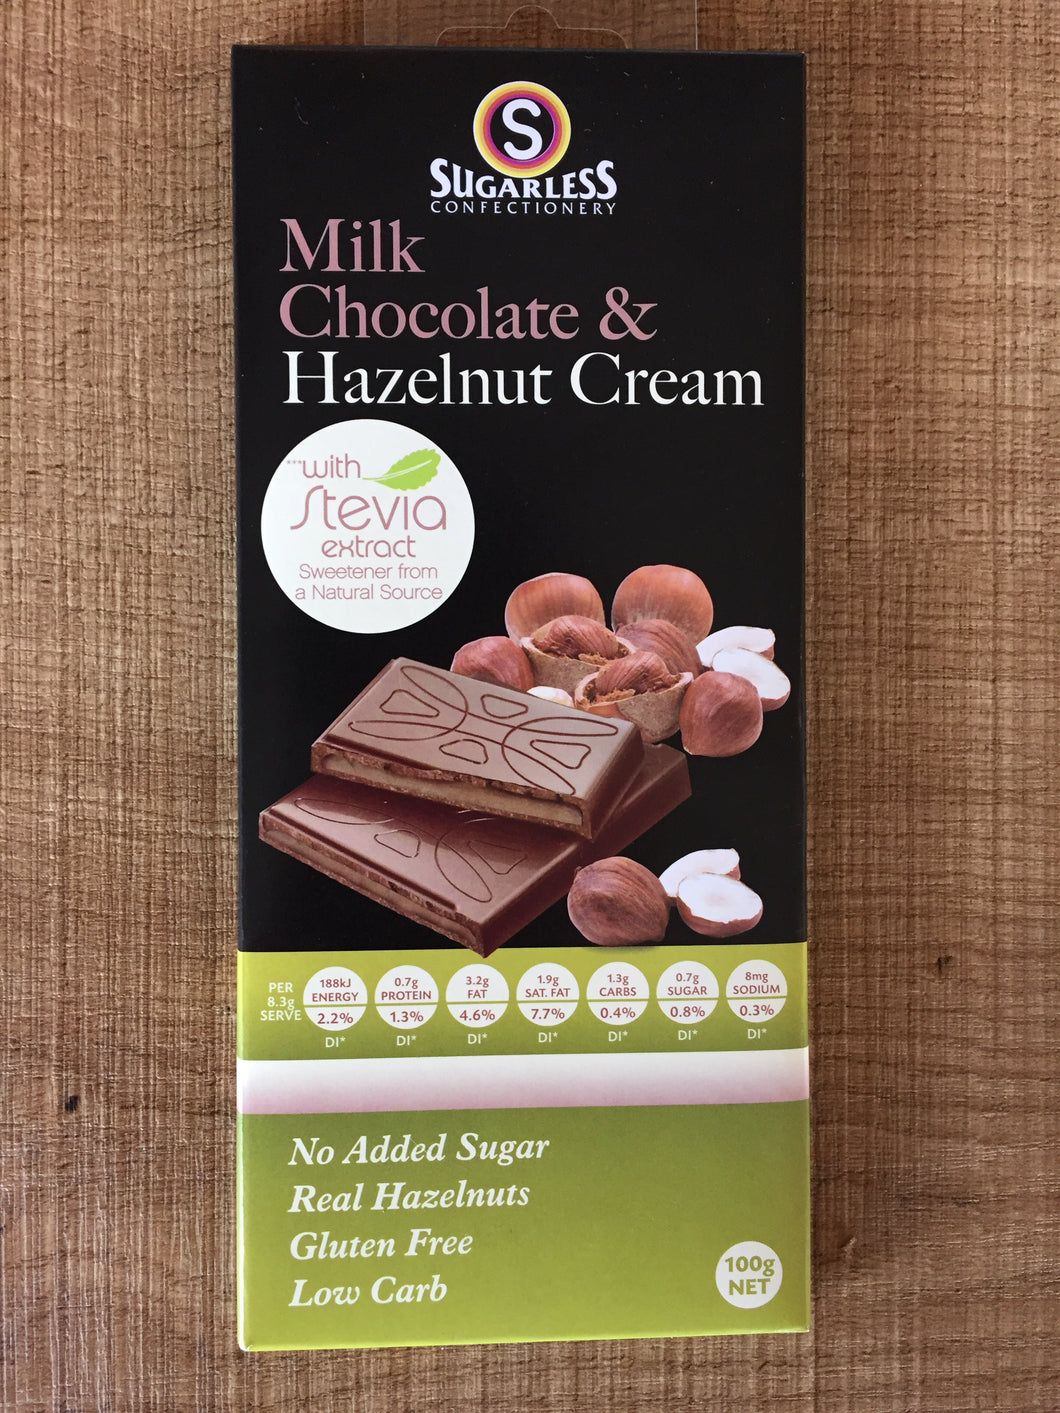 Sugarless Confectionary - Milk Chocolate & Hazelnut Cream (Stevia Range)